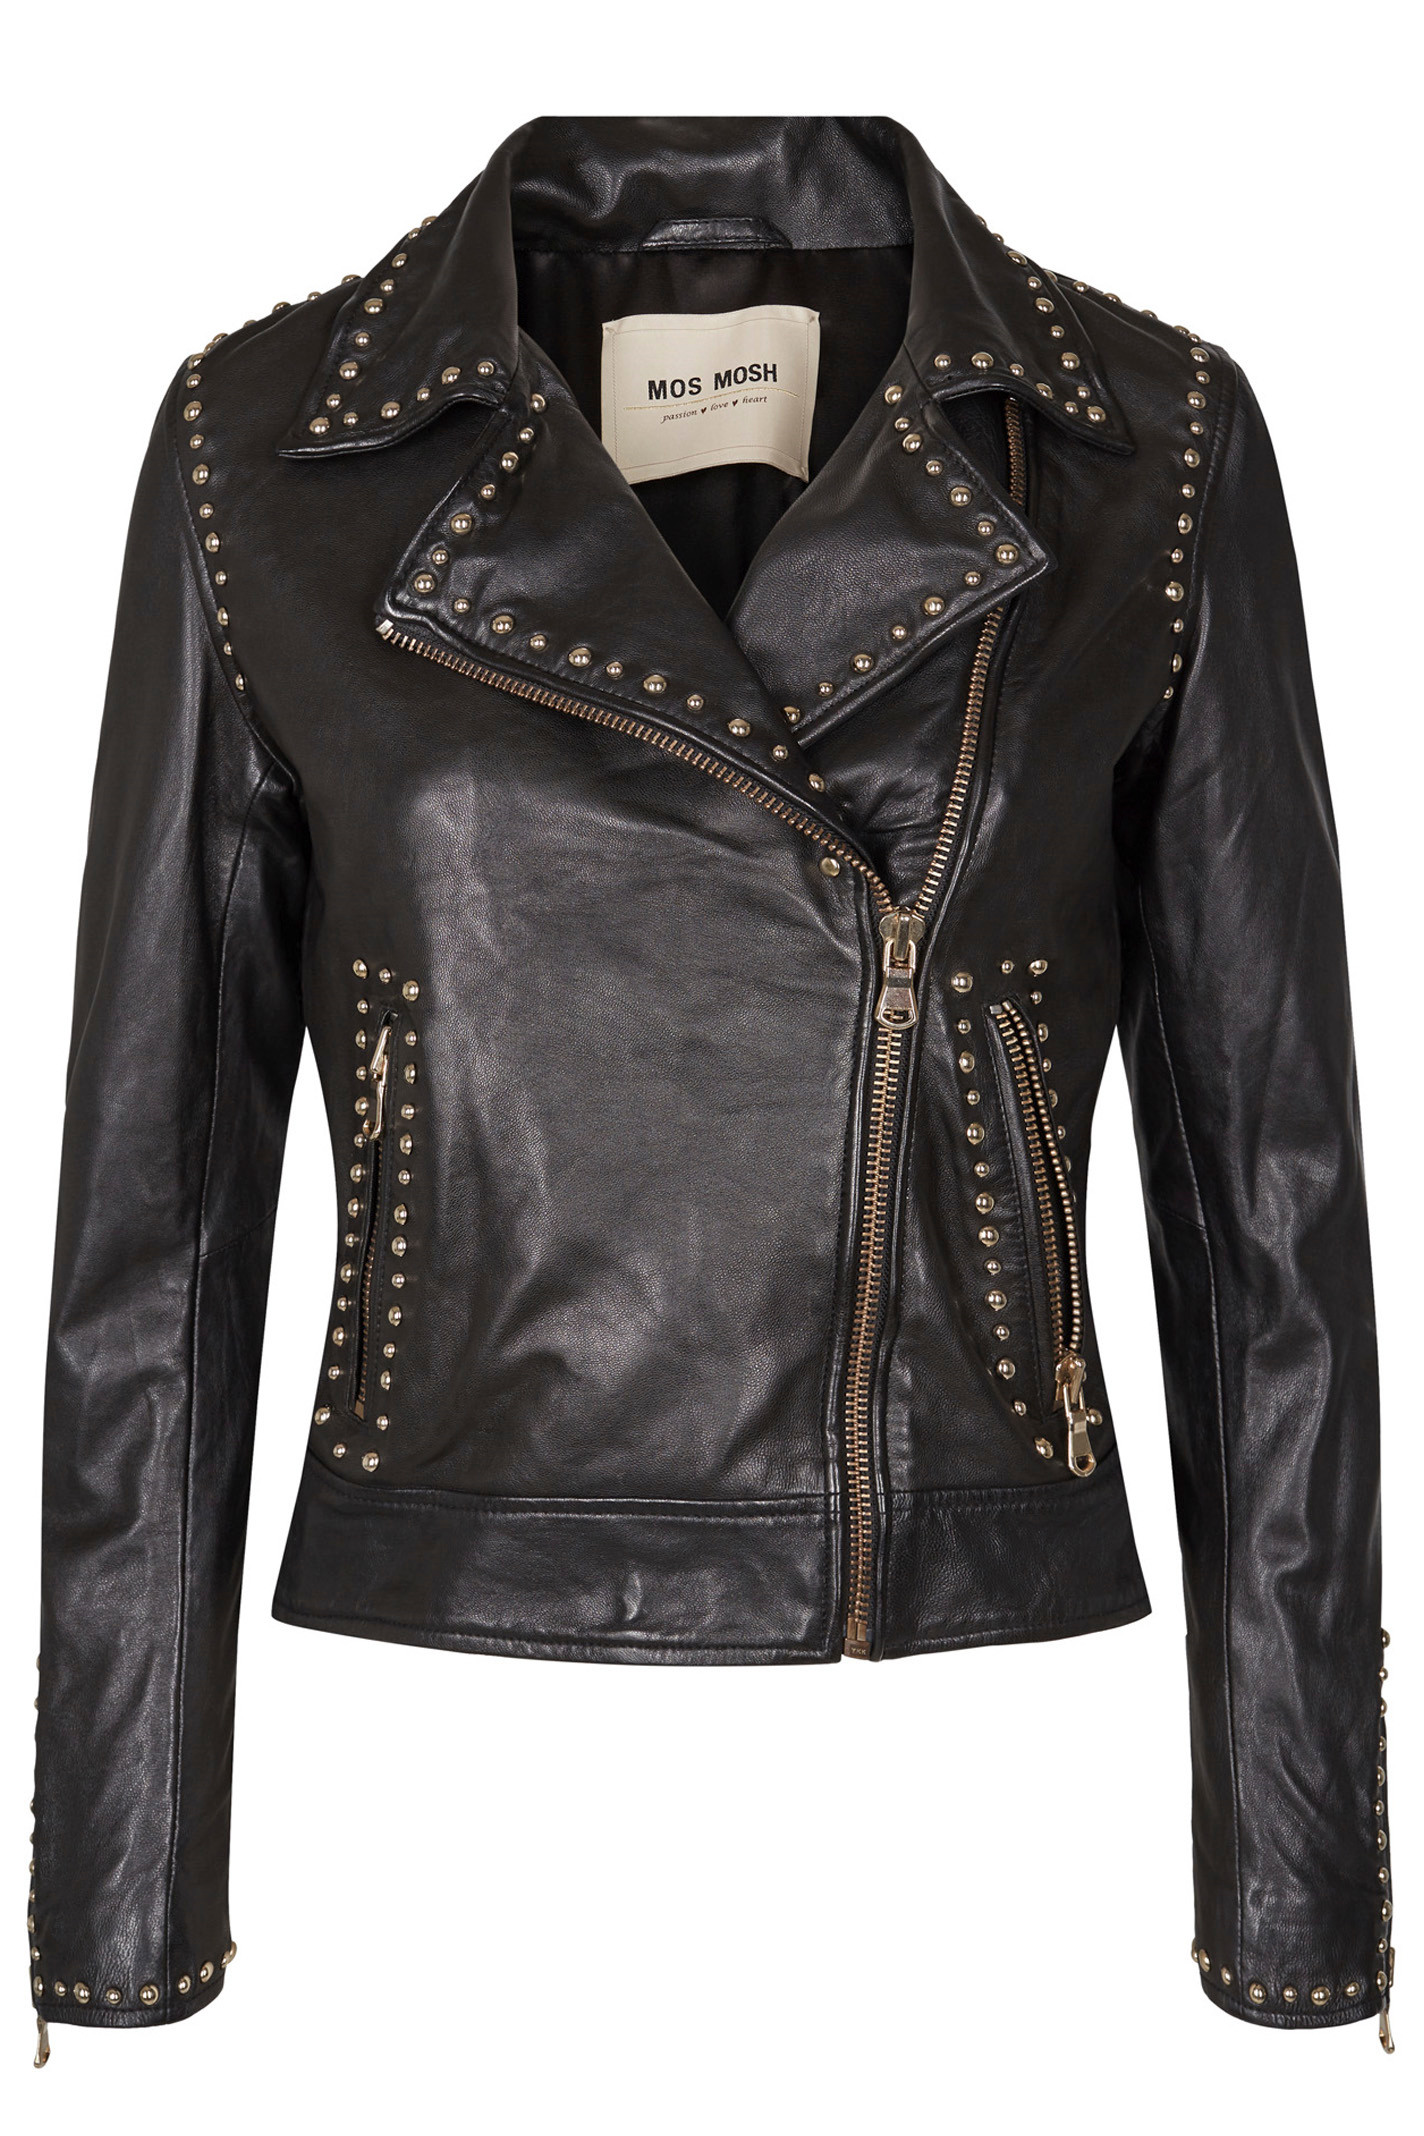 MOS MOSH REBEL LEATHER JACKET 126410 SORT